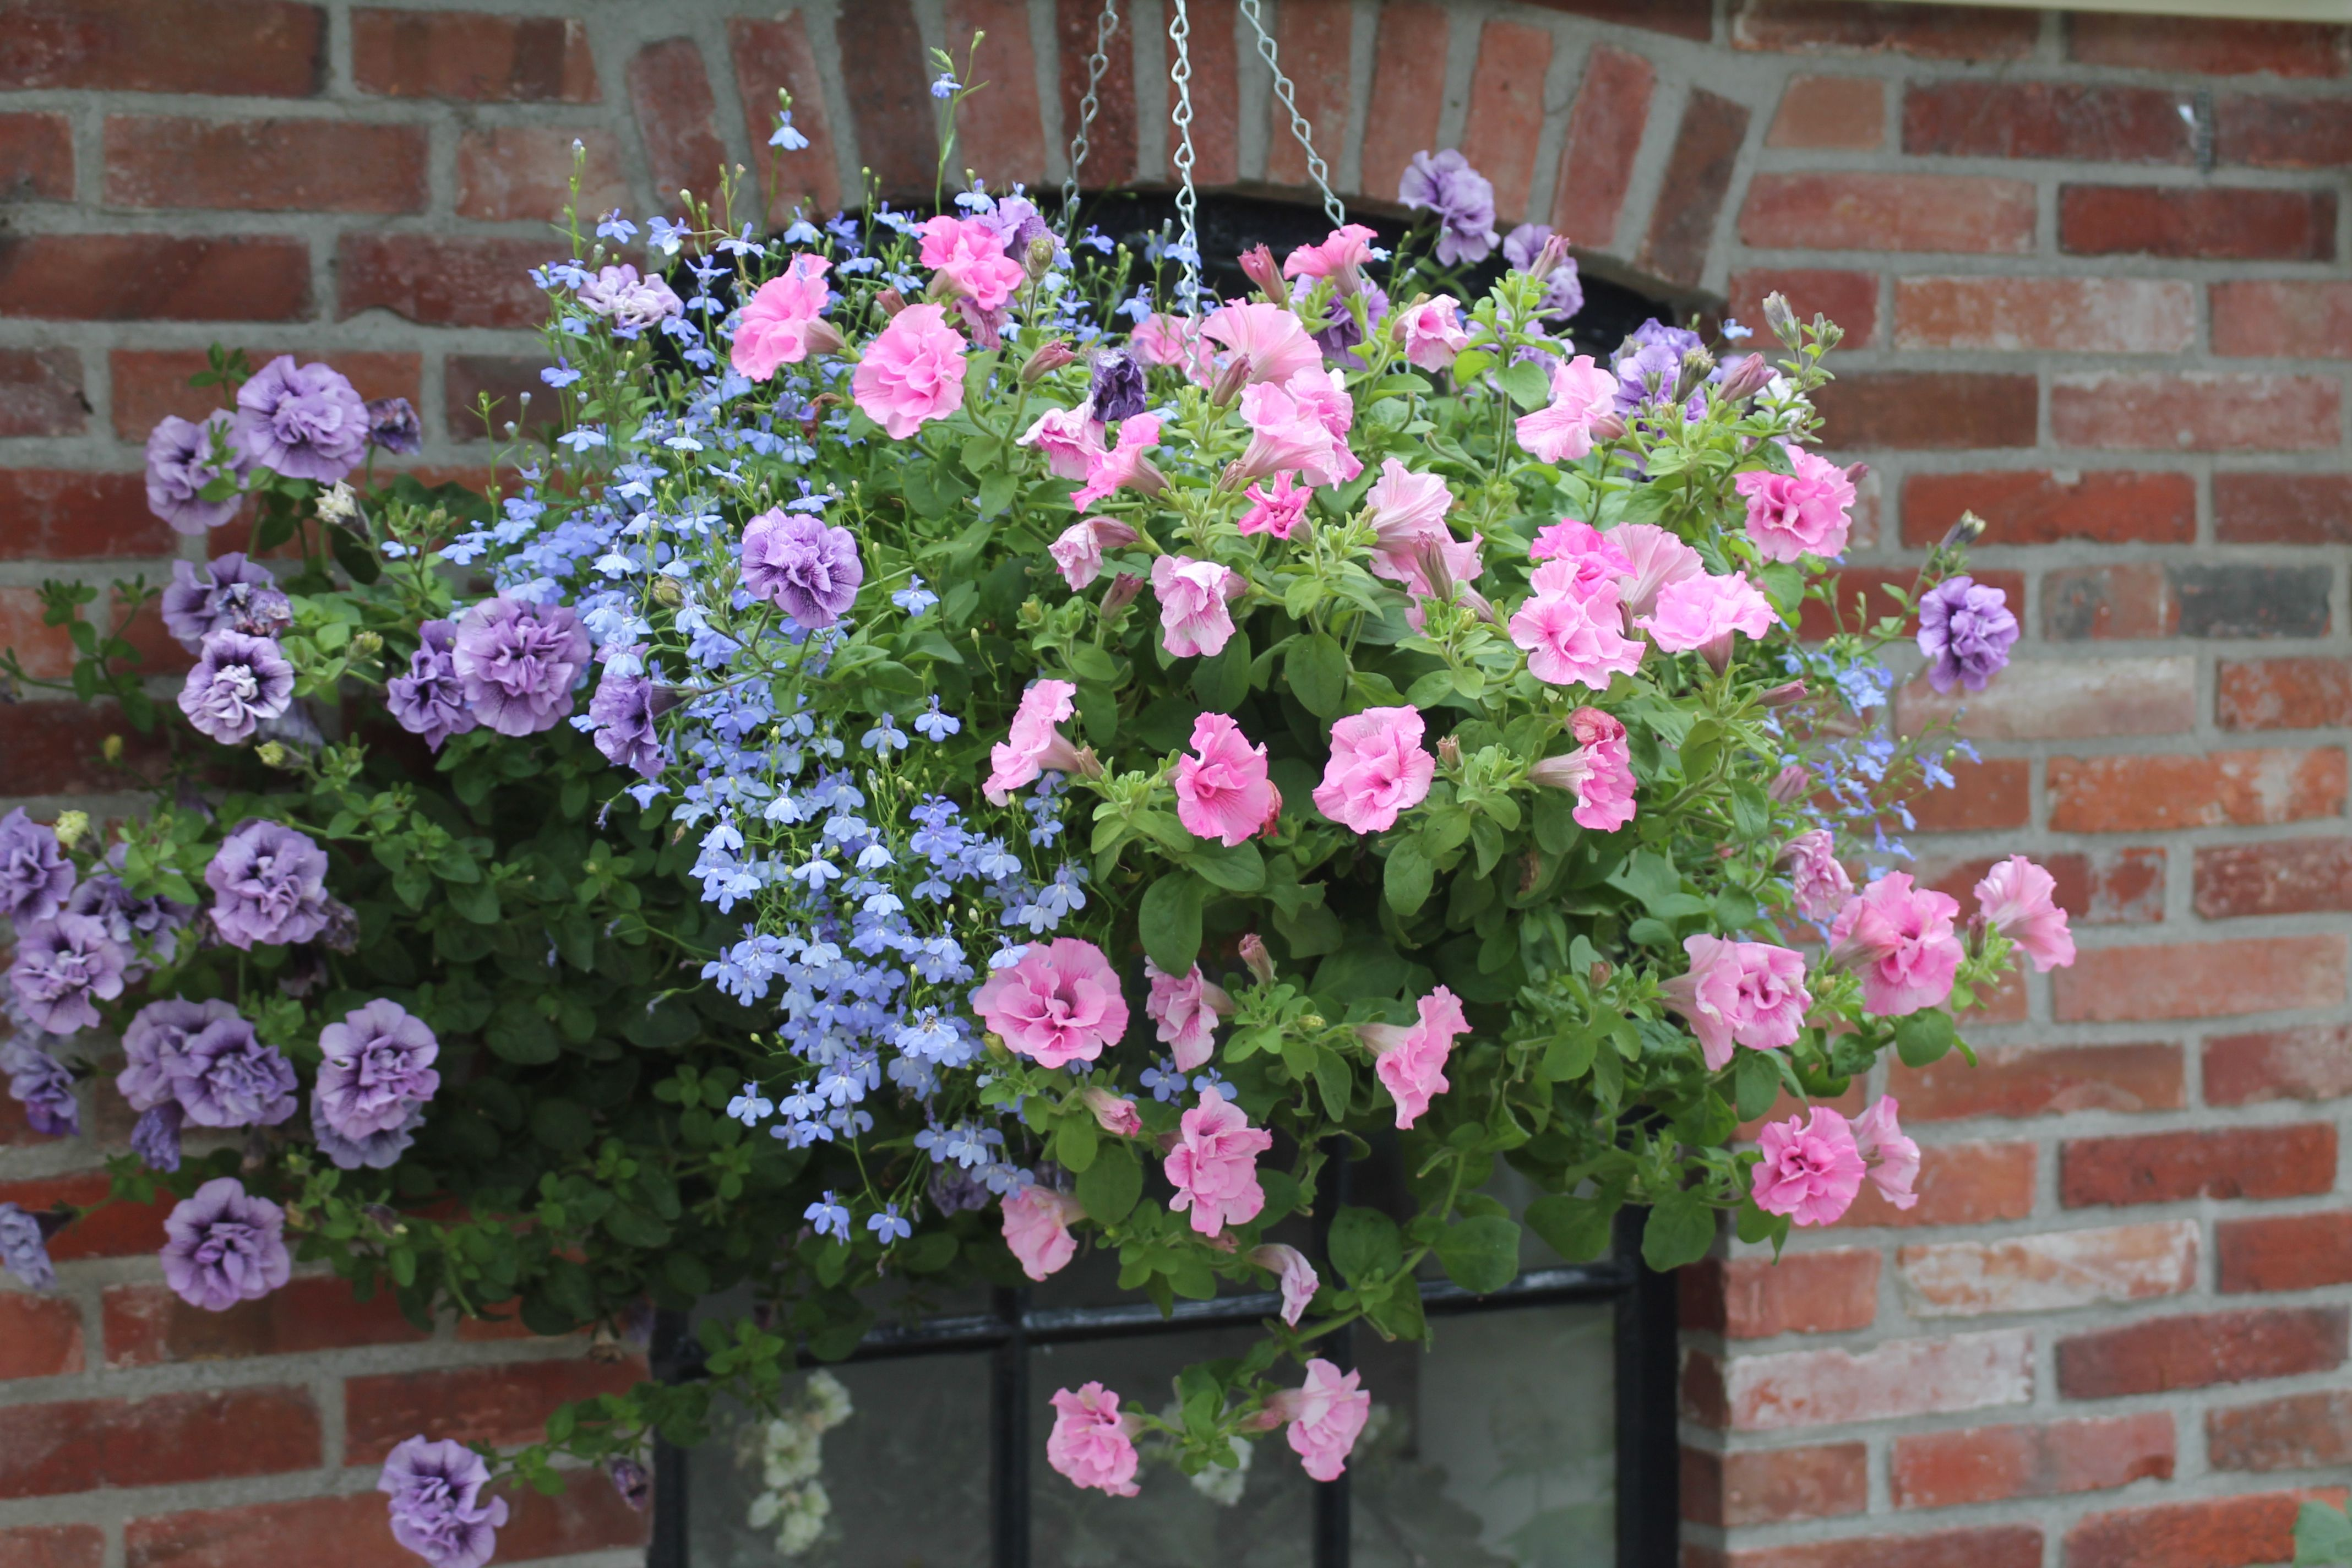 Hanging Basket With Surfinias In Pink And Purple Combined With